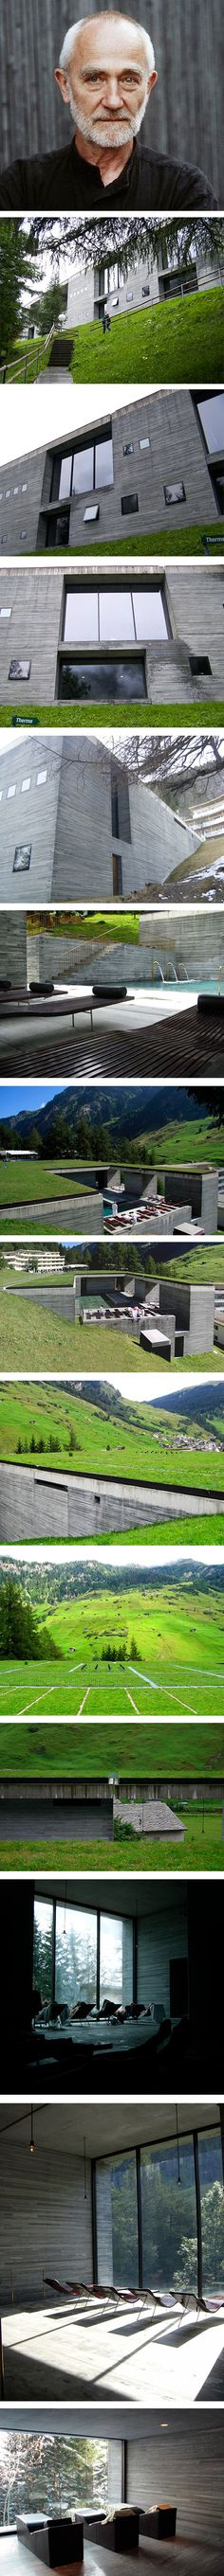 Peter Zumthor - Vals : Surrounding mountains are the perfect enclave for this beautiful project.